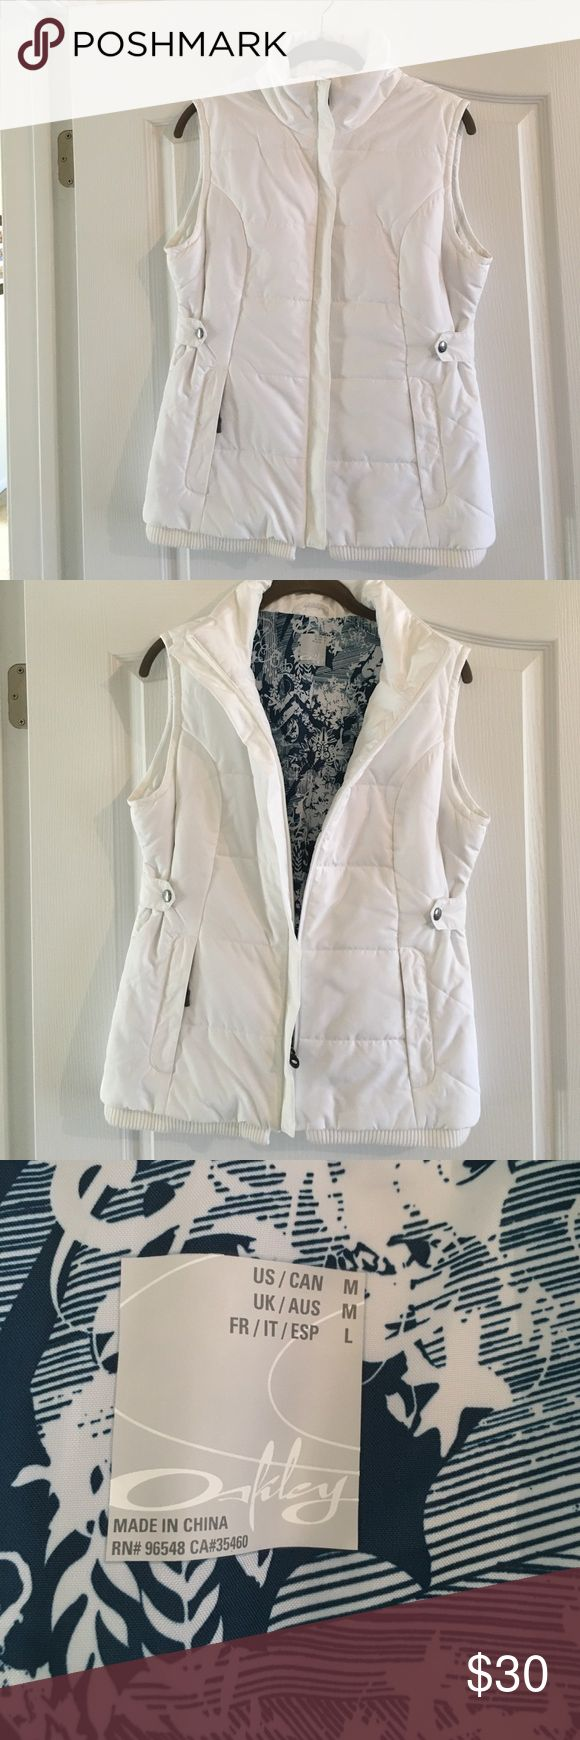 Oakley white vest (like New) Cute white Oakley vest with blue and white lining (like new) Oakley Jackets & Coats Vests